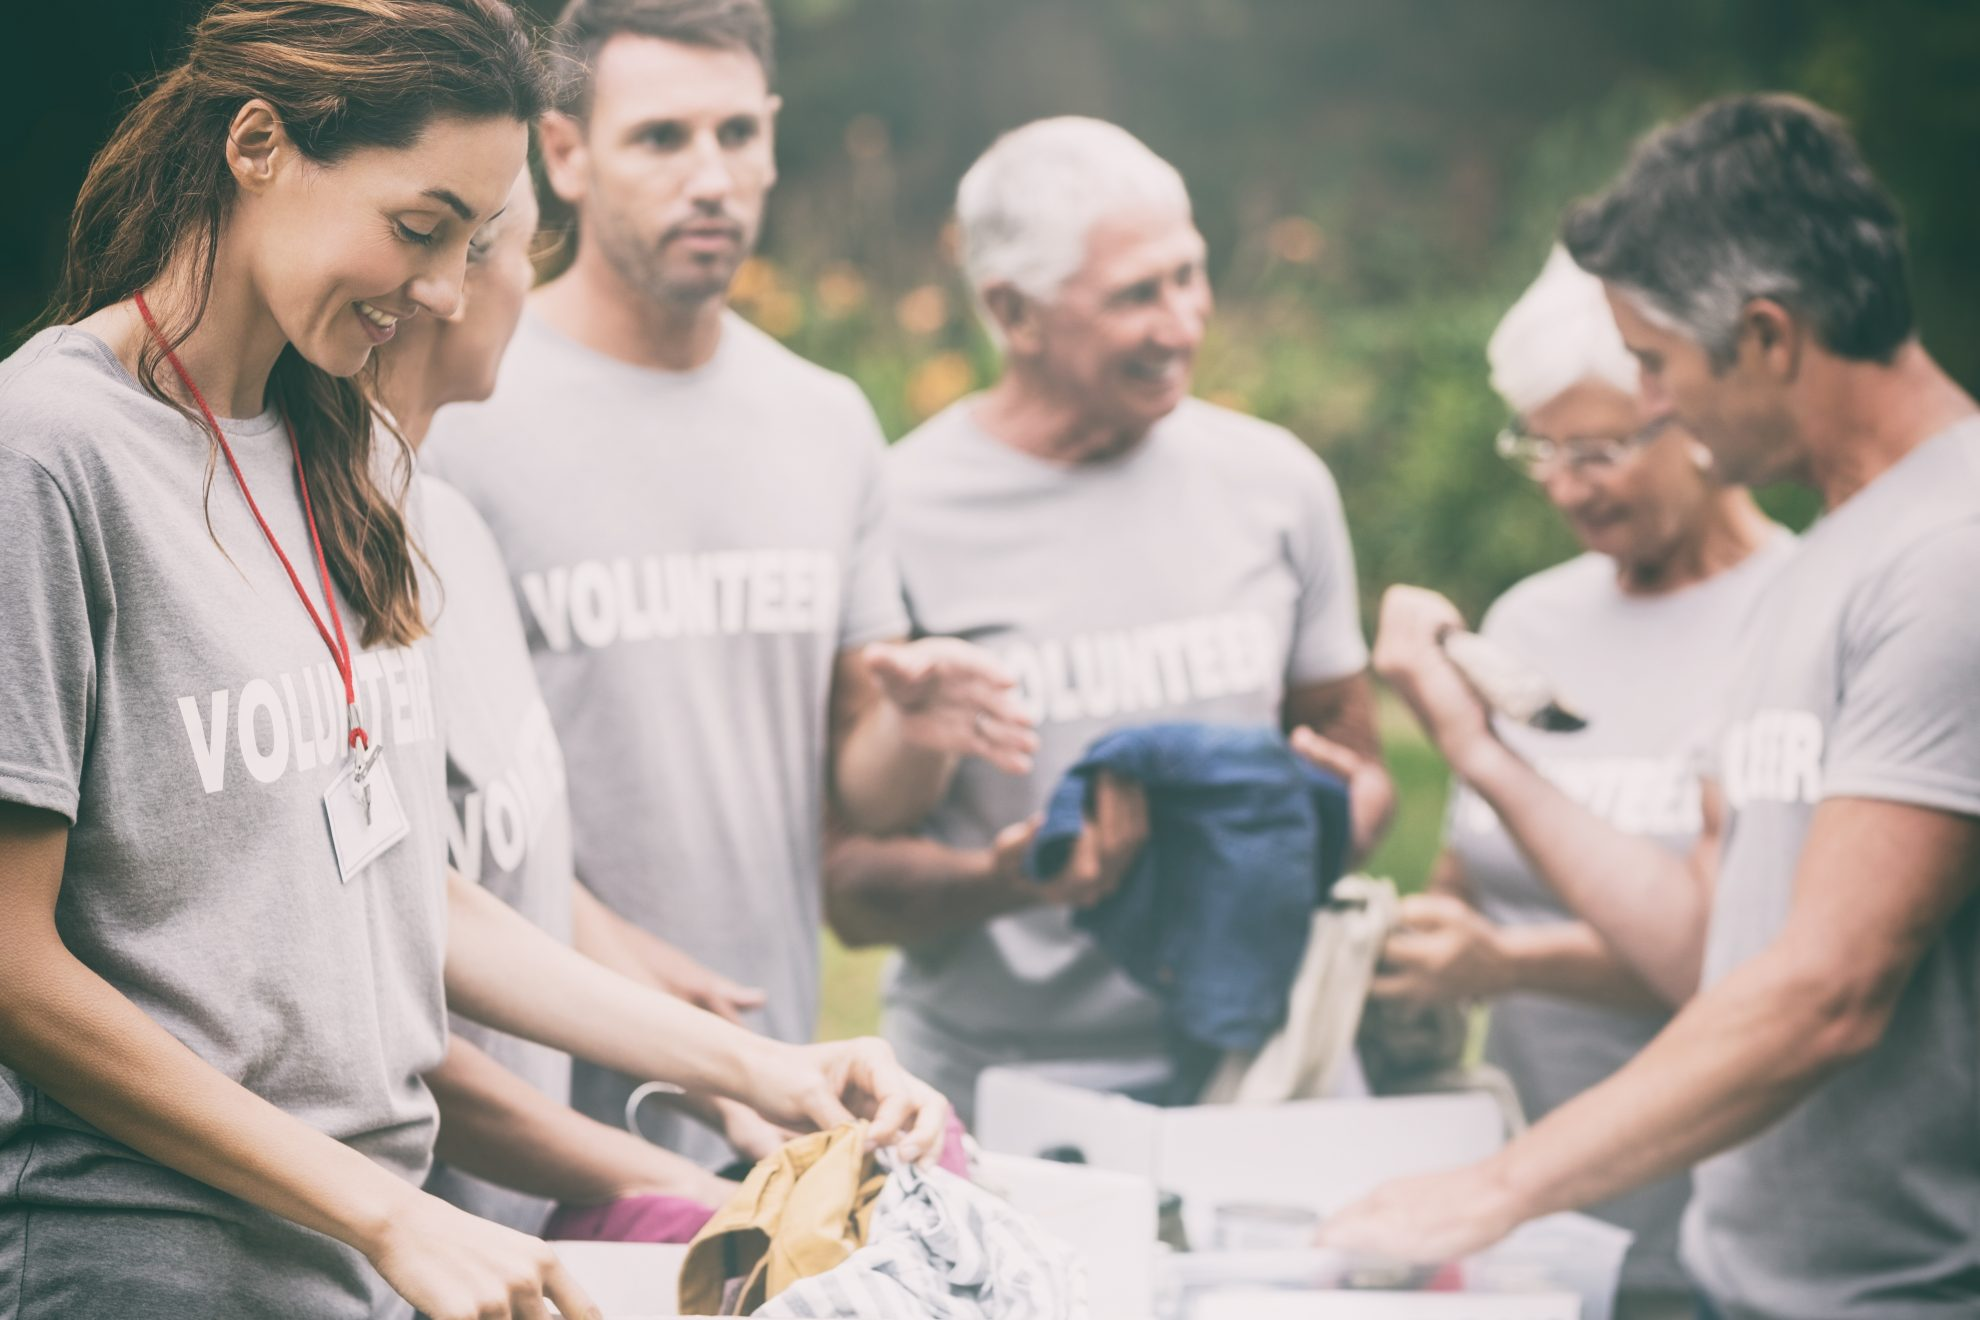 Photo of volunteers for a reputable charity organization that gives back- make a difference